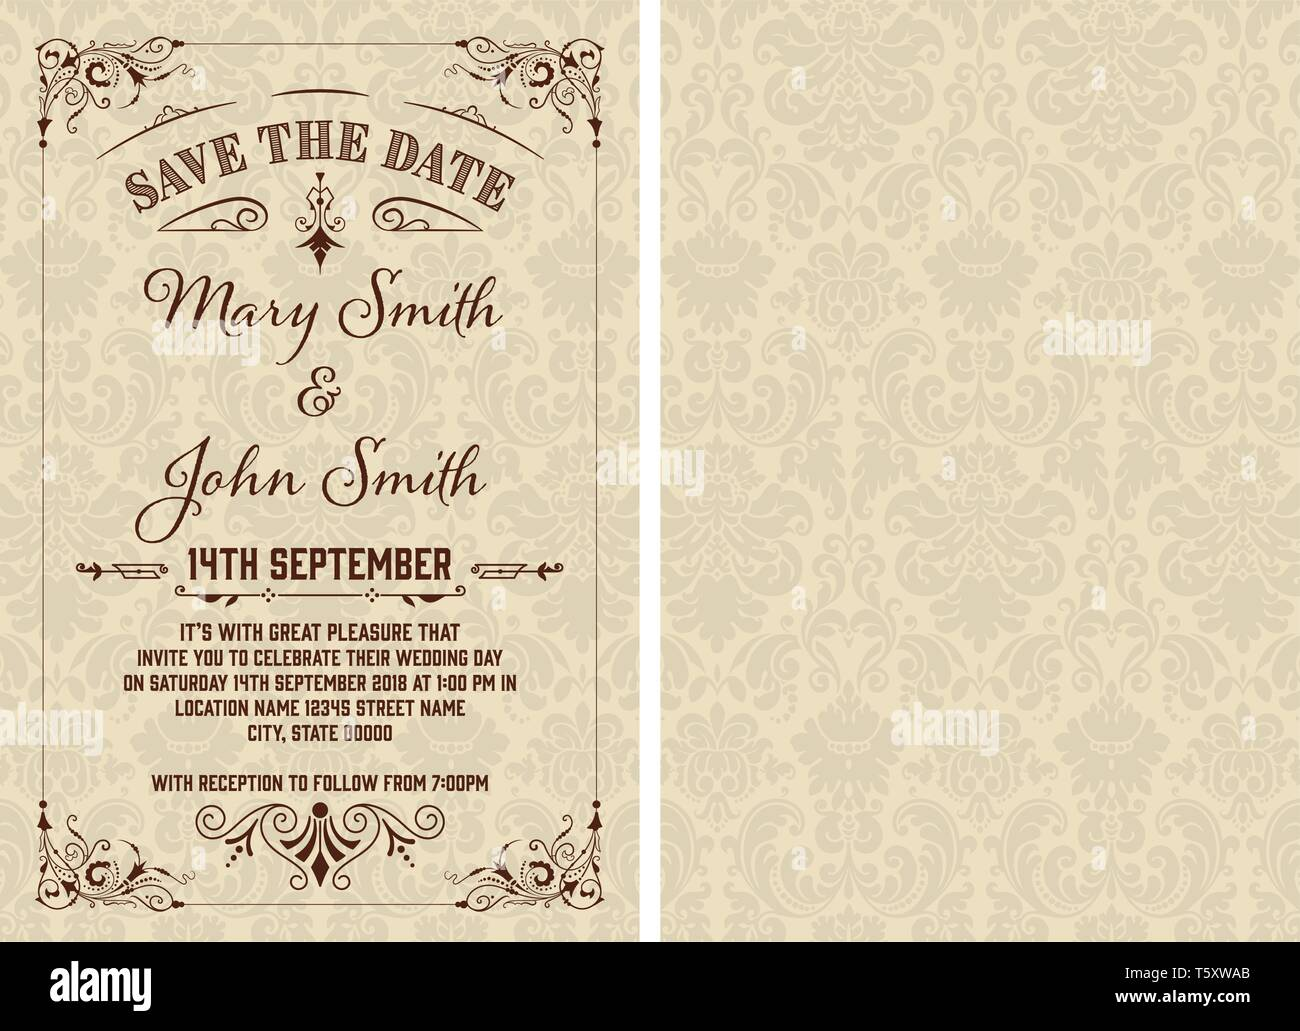 Vintage Save The Date Template Vector Layered Stock Art